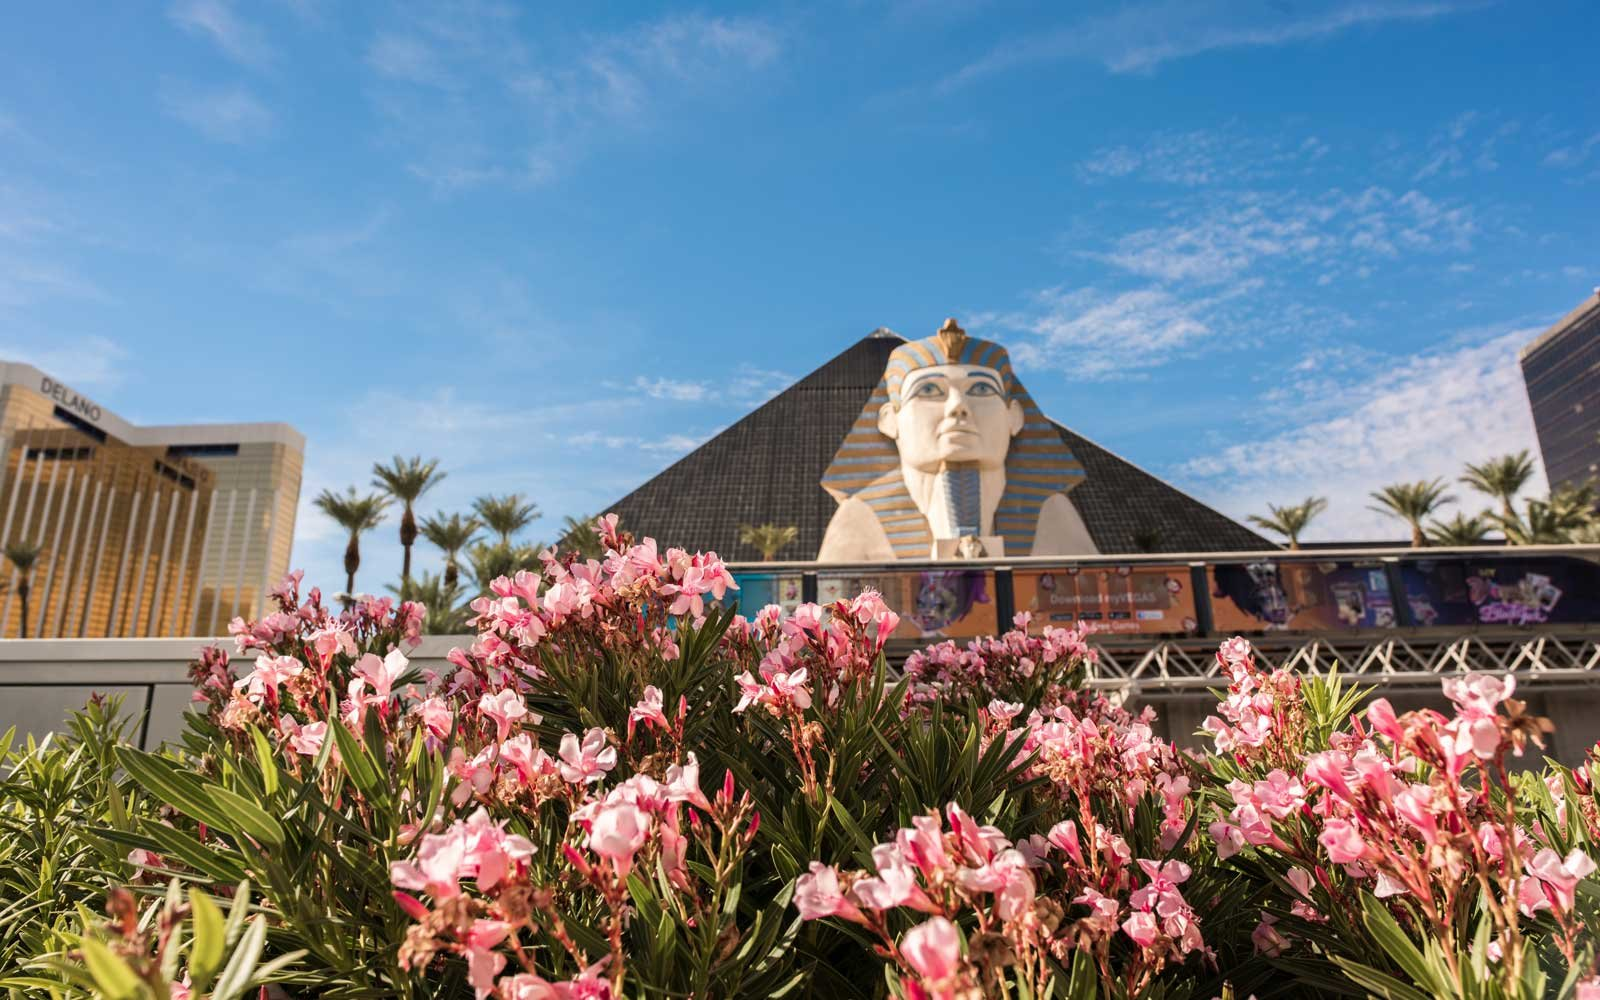 The Luxor Hotel and Casino in Las Vegas